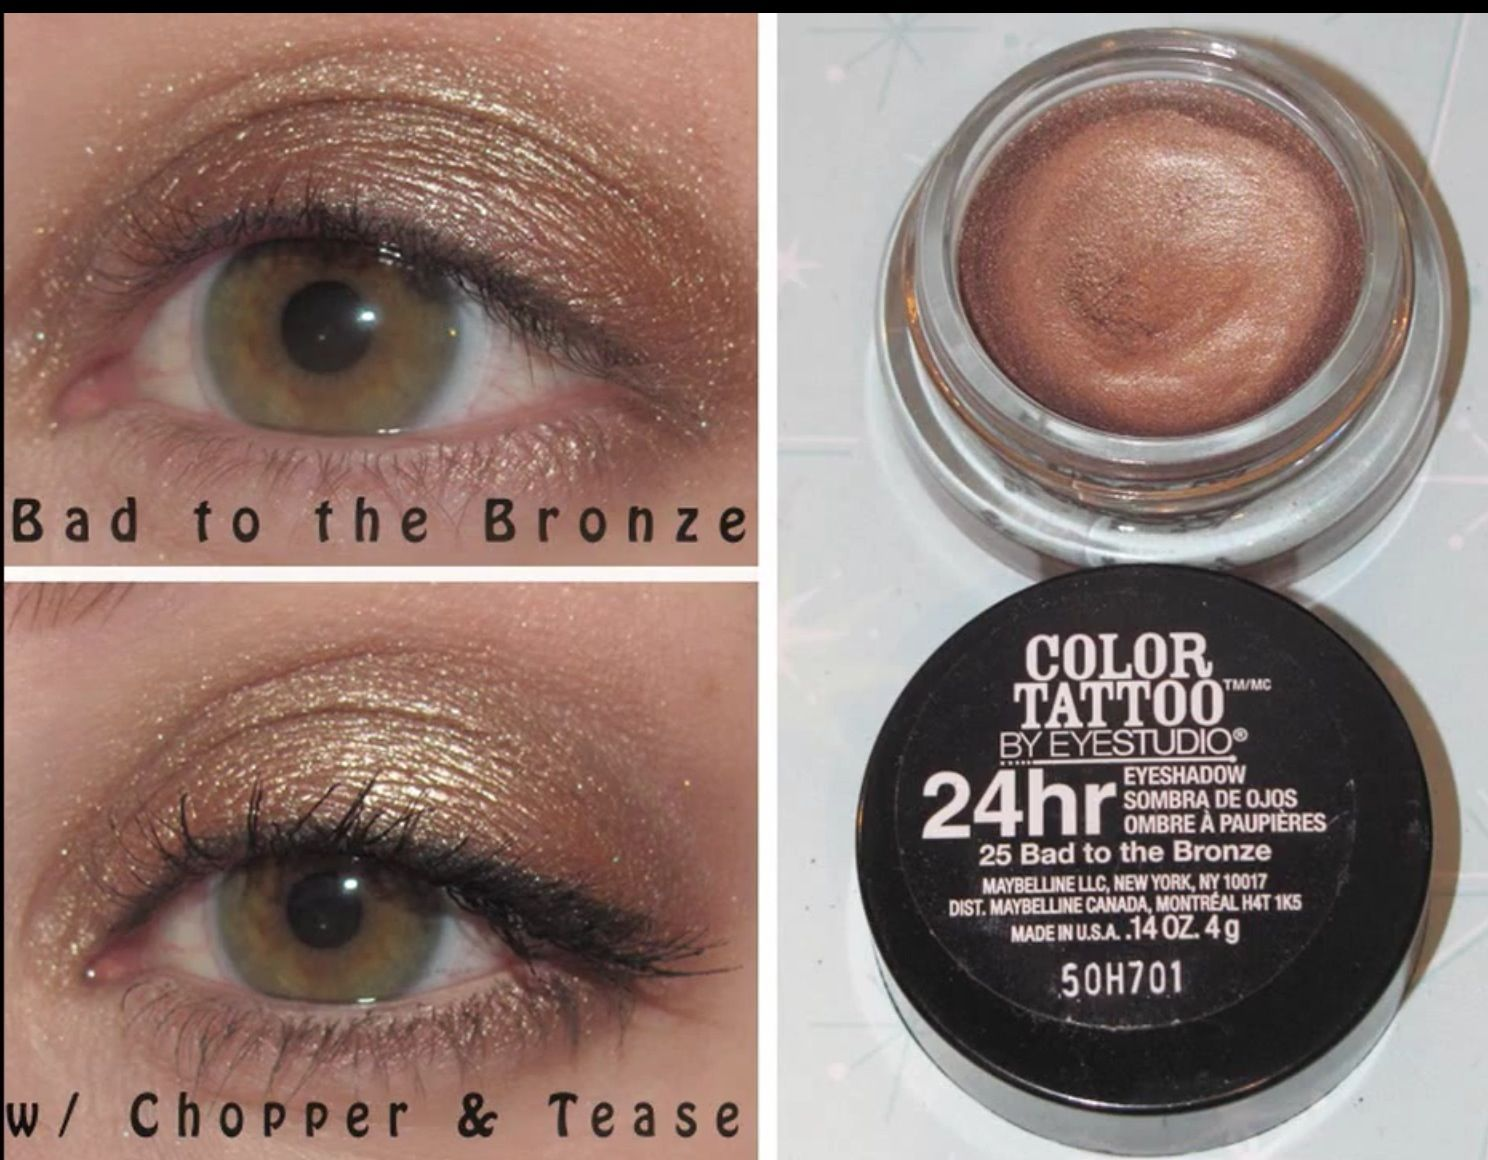 Pin By Angie Gonzalez On Makeup Maybelline Color Tattoo Maybelline Color Maybelline Eyeshadow